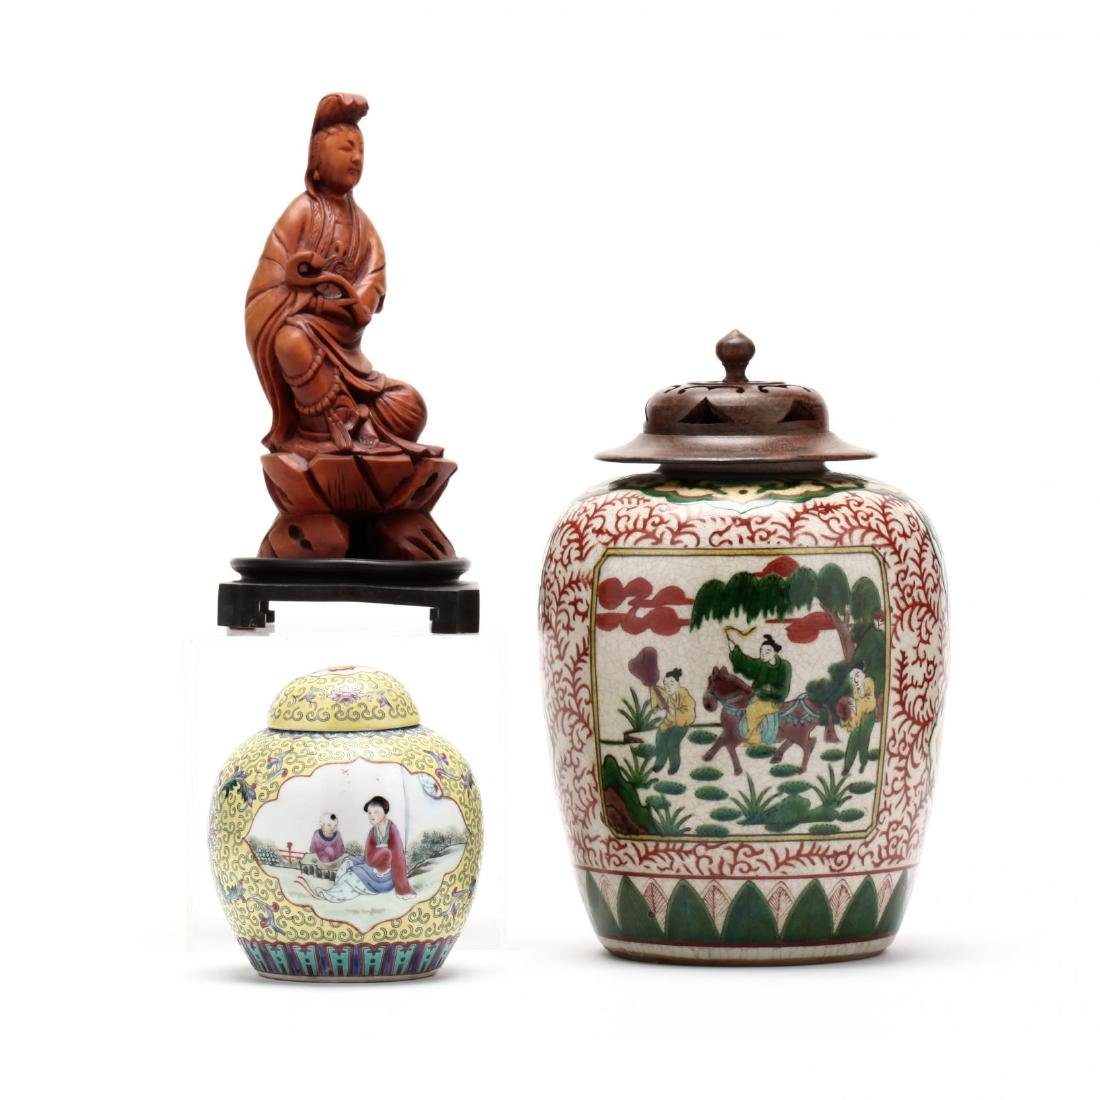 Two Chinese Covered Ginger Jars and Carved Wooden